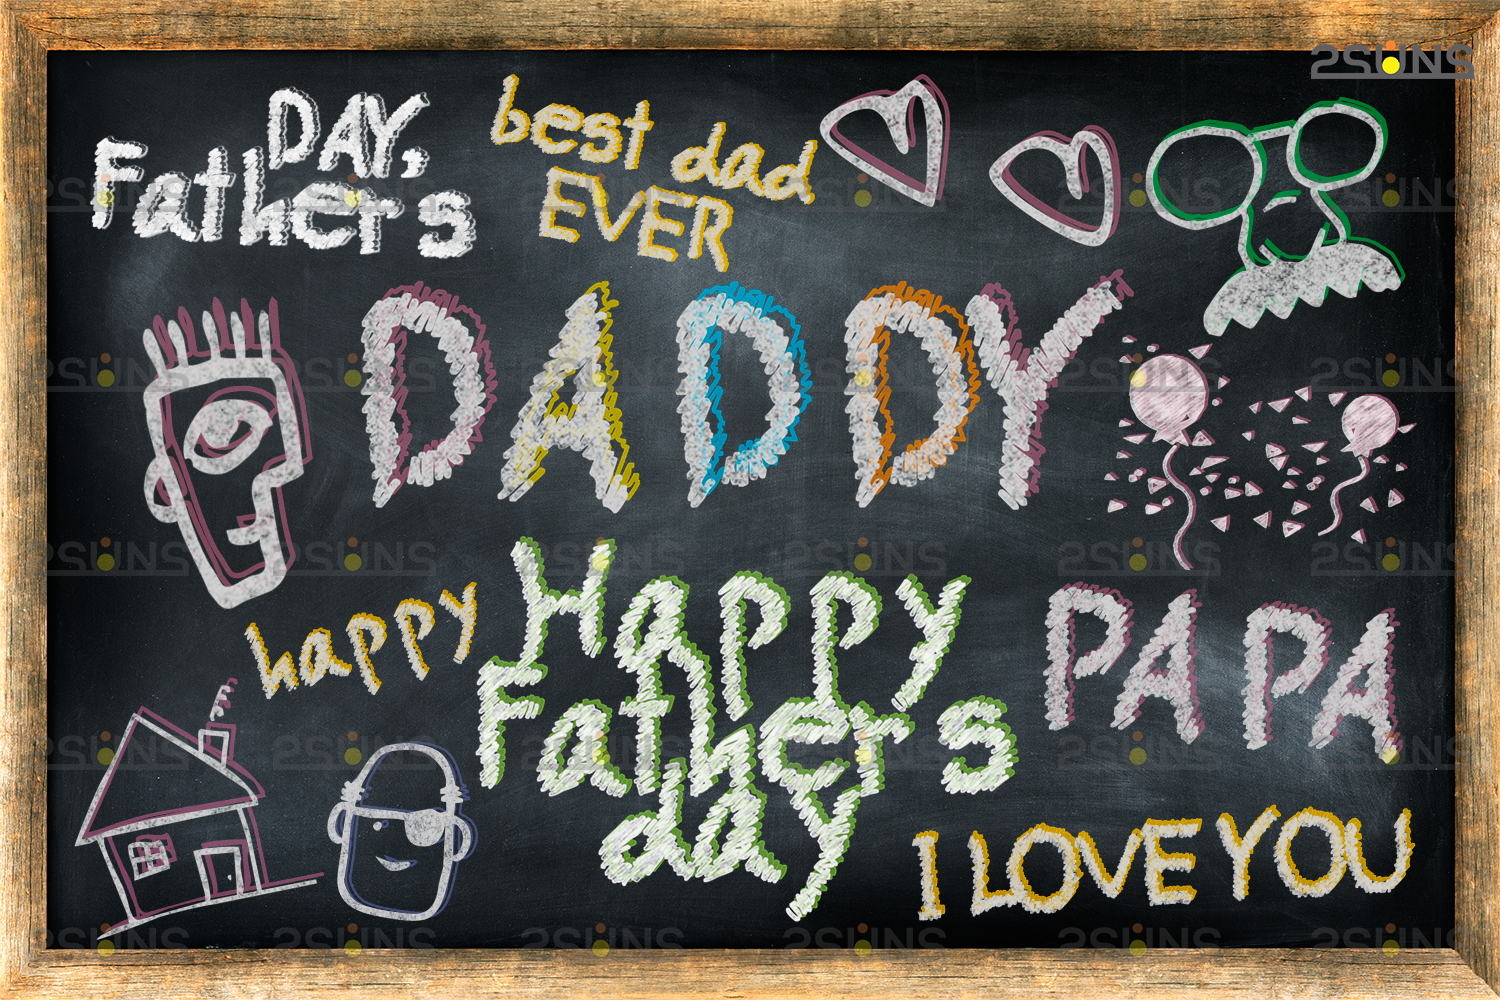 Download Free Overlay Father S Day Sidewalk Chalk Art Graphic By 2suns for Cricut Explore, Silhouette and other cutting machines.